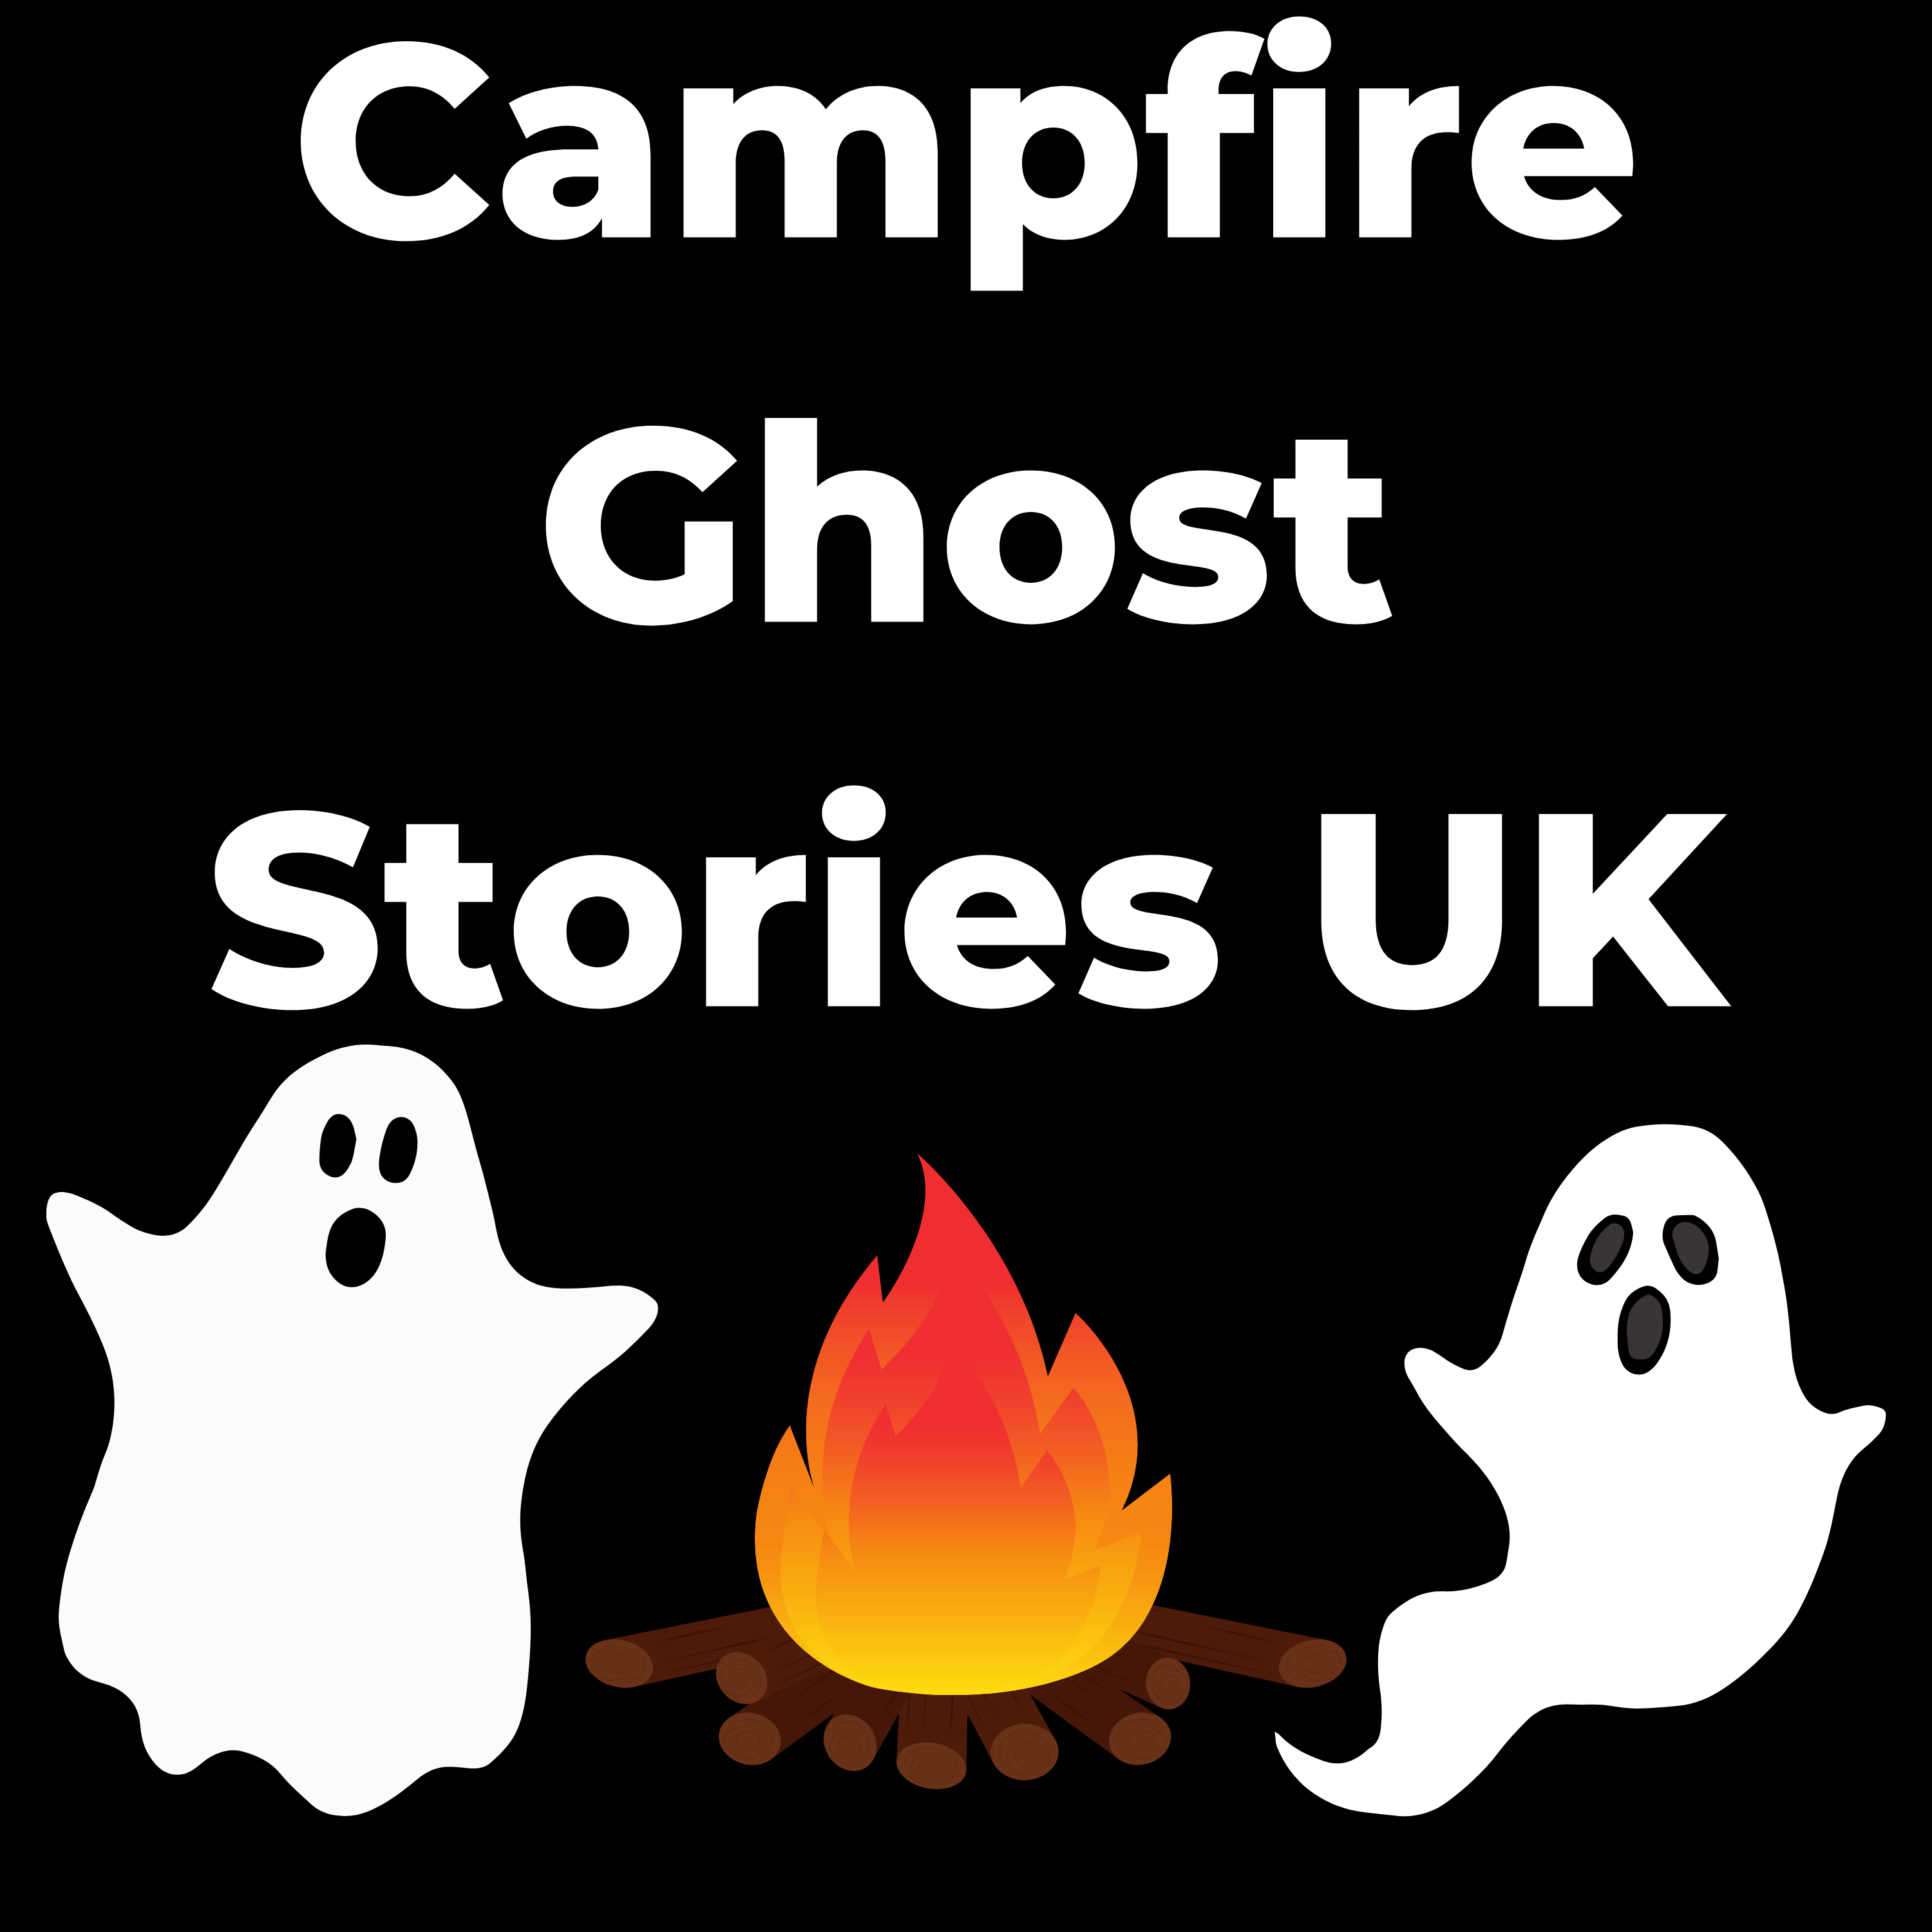 Campfire Ghost Stories UK